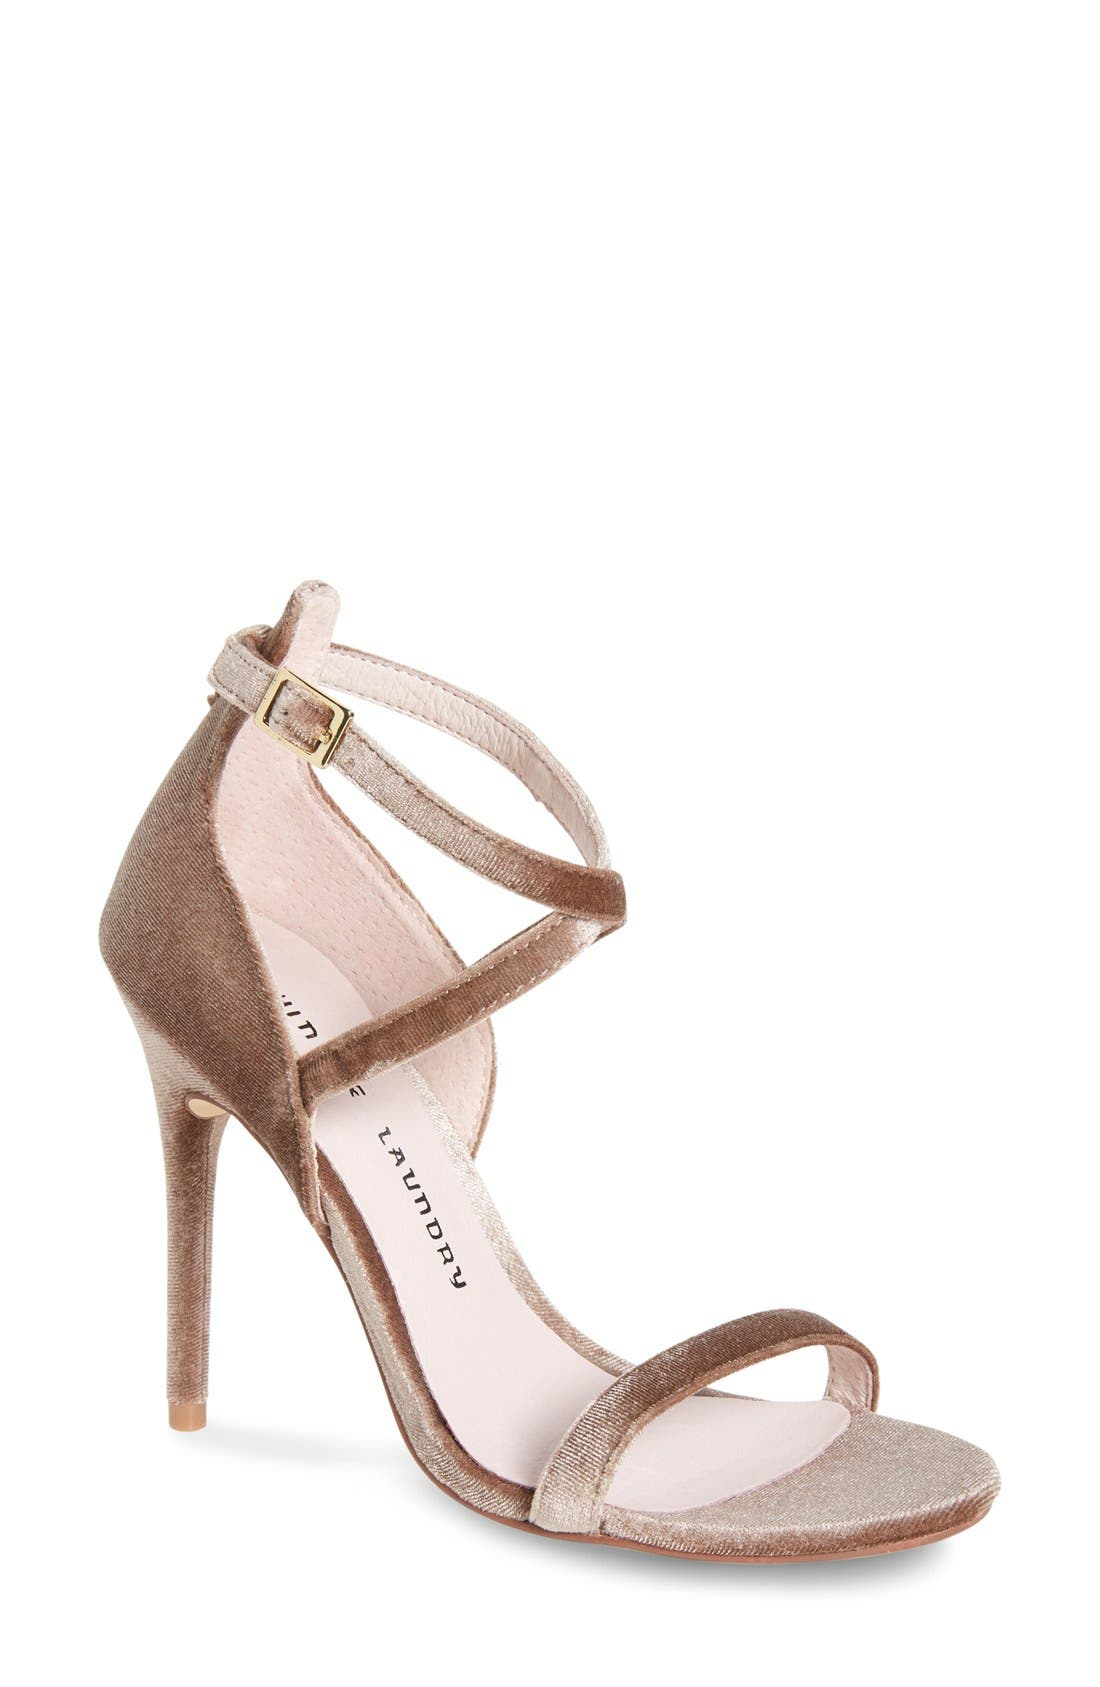 Main Image - Chinese Laundry Lavelle Ankle Strap Sandal (Women)